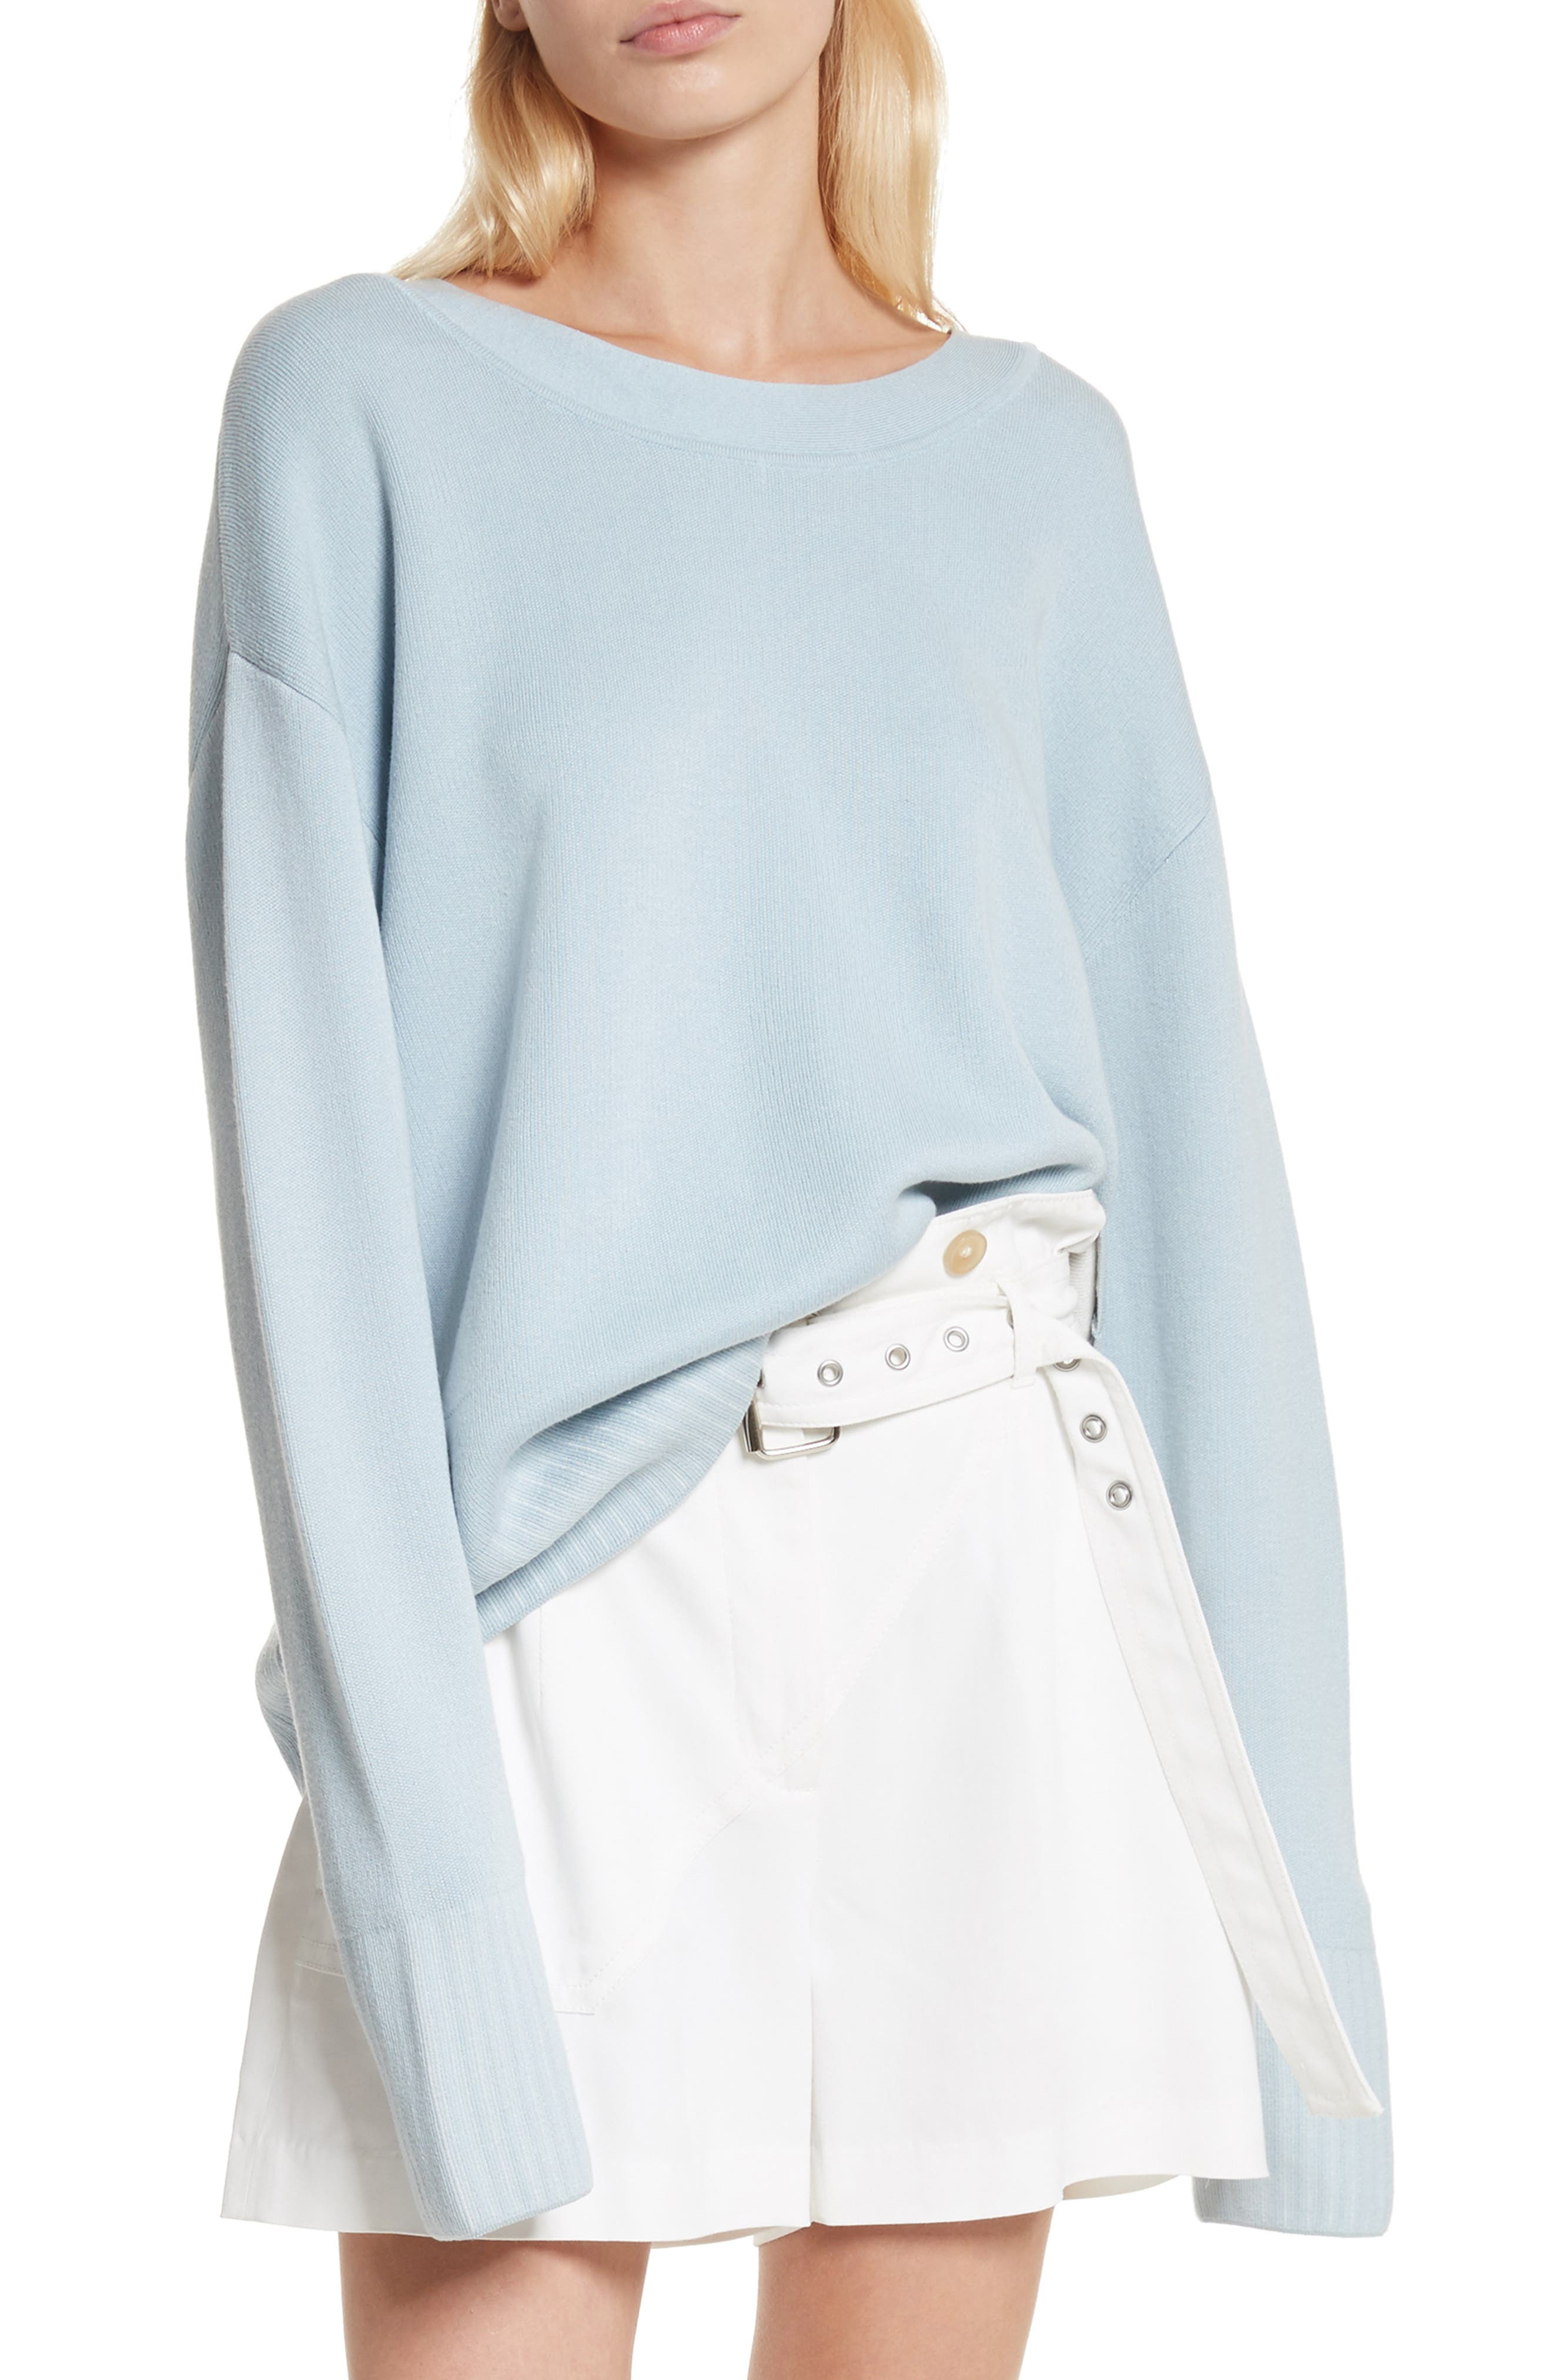 Main Image - 3.1 Phillip Lim Silk & Cotton Blend Sweater